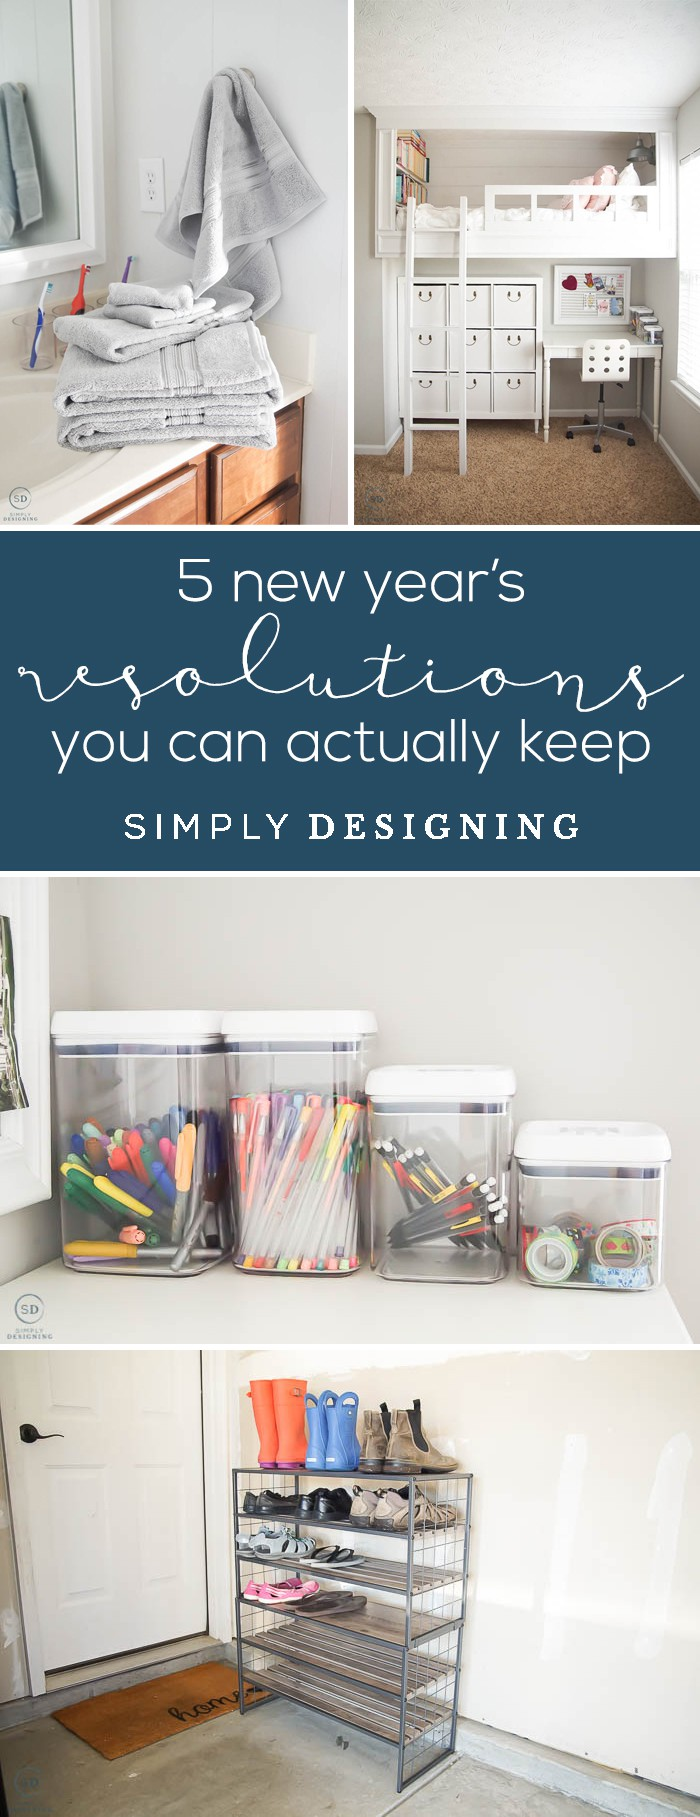 5 New Years Resolutions You Can Actually Keep this Year